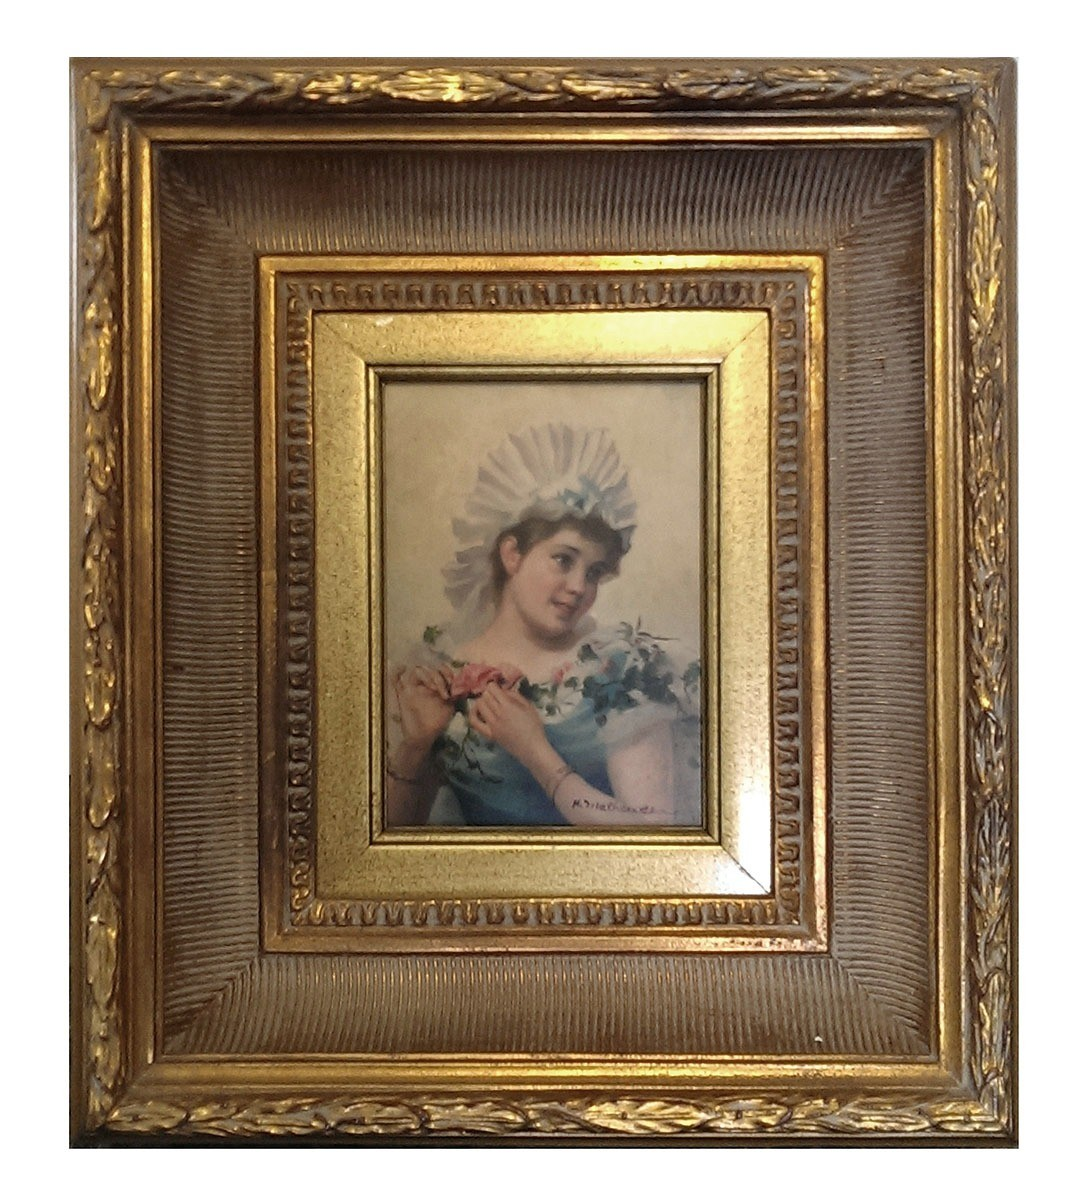 Print of a lady in a period style frame